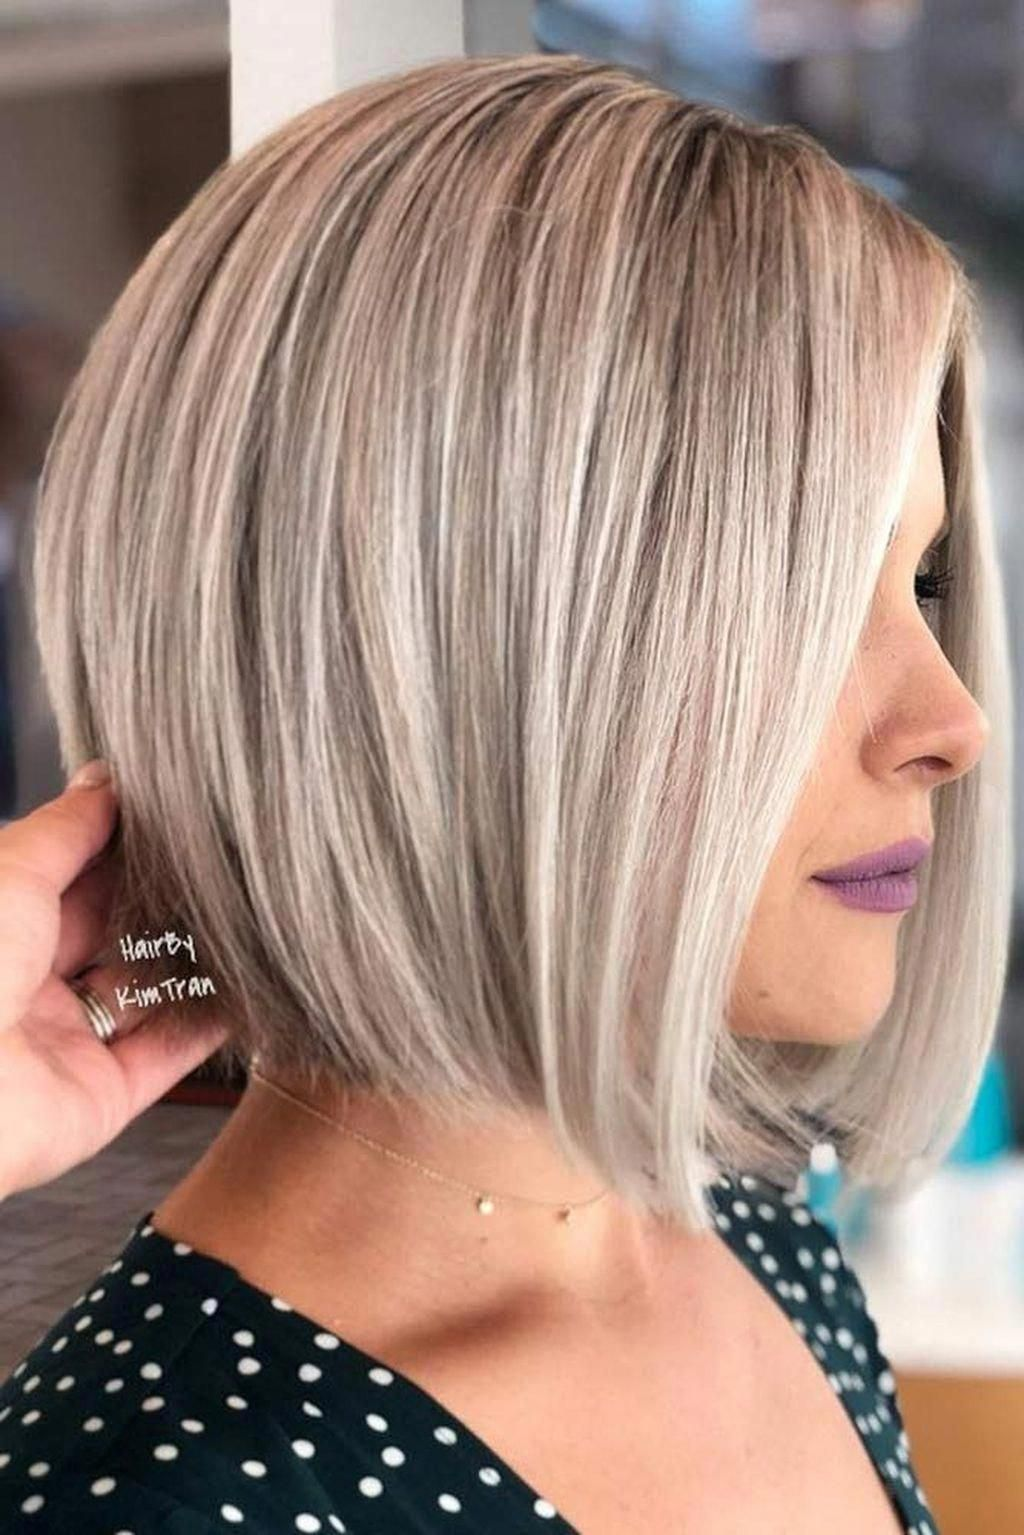 Sensational 86 Hottest Bob Hairstyles Haircuts 2019 Bob Hairstyles For Schematic Wiring Diagrams Amerangerunnerswayorg